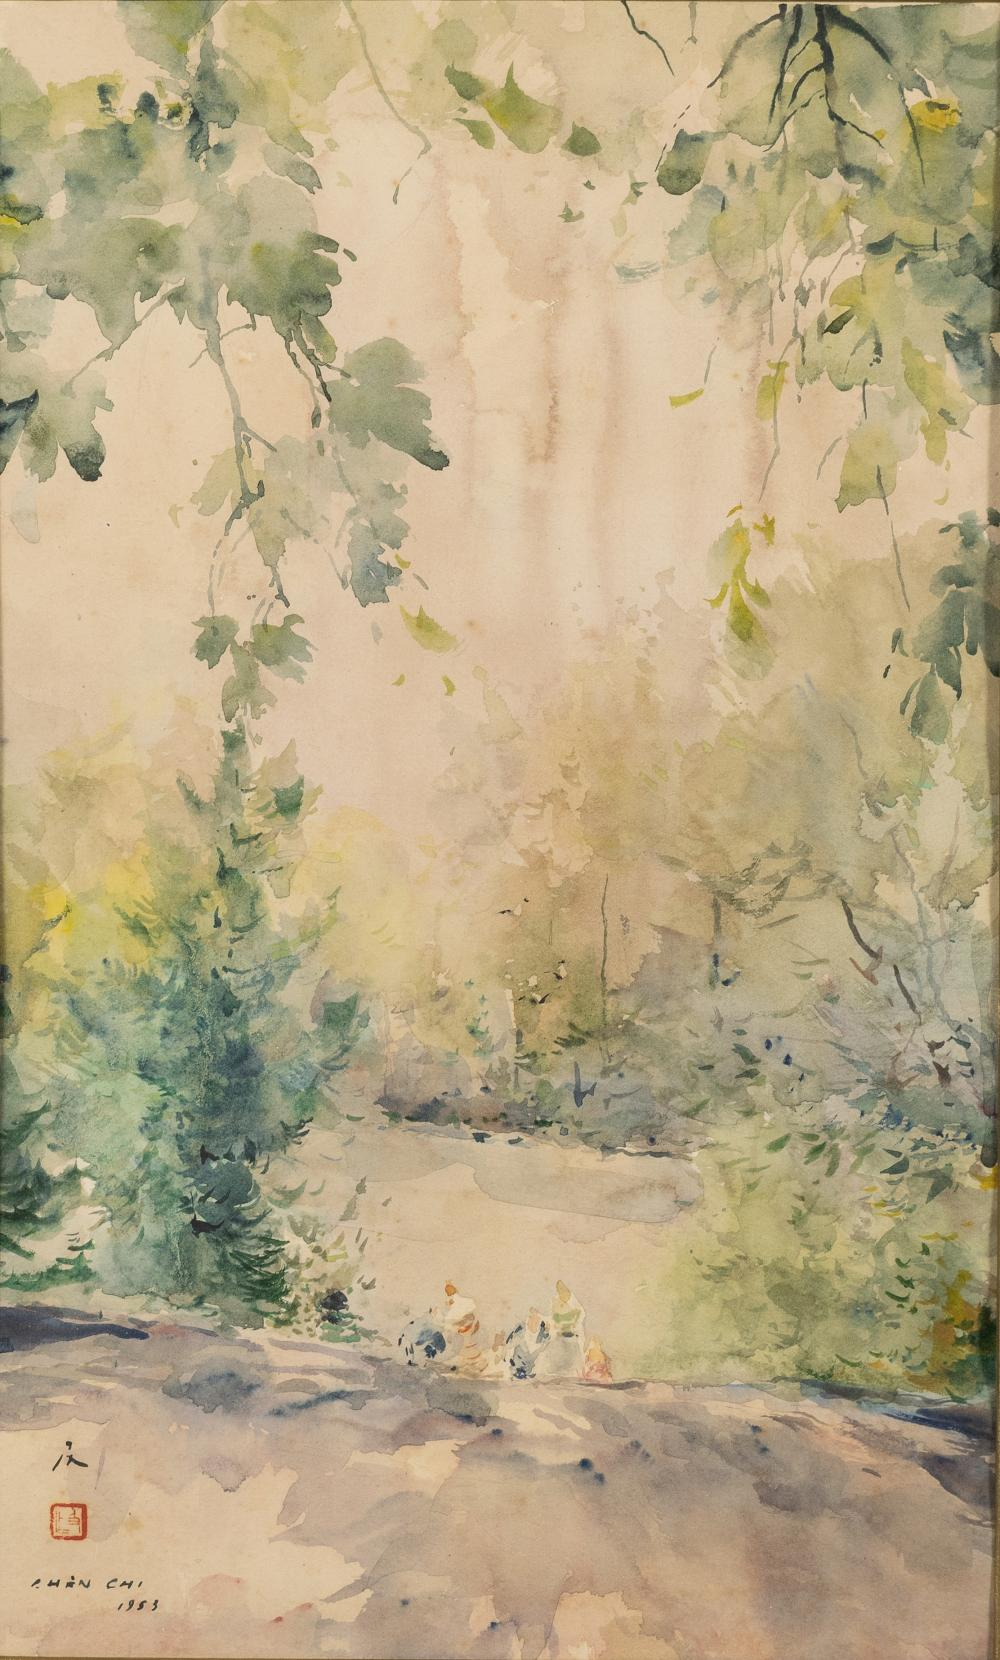 WATERCOLOR PAINTING OF GARDEN SCENE BY CHENG CHI